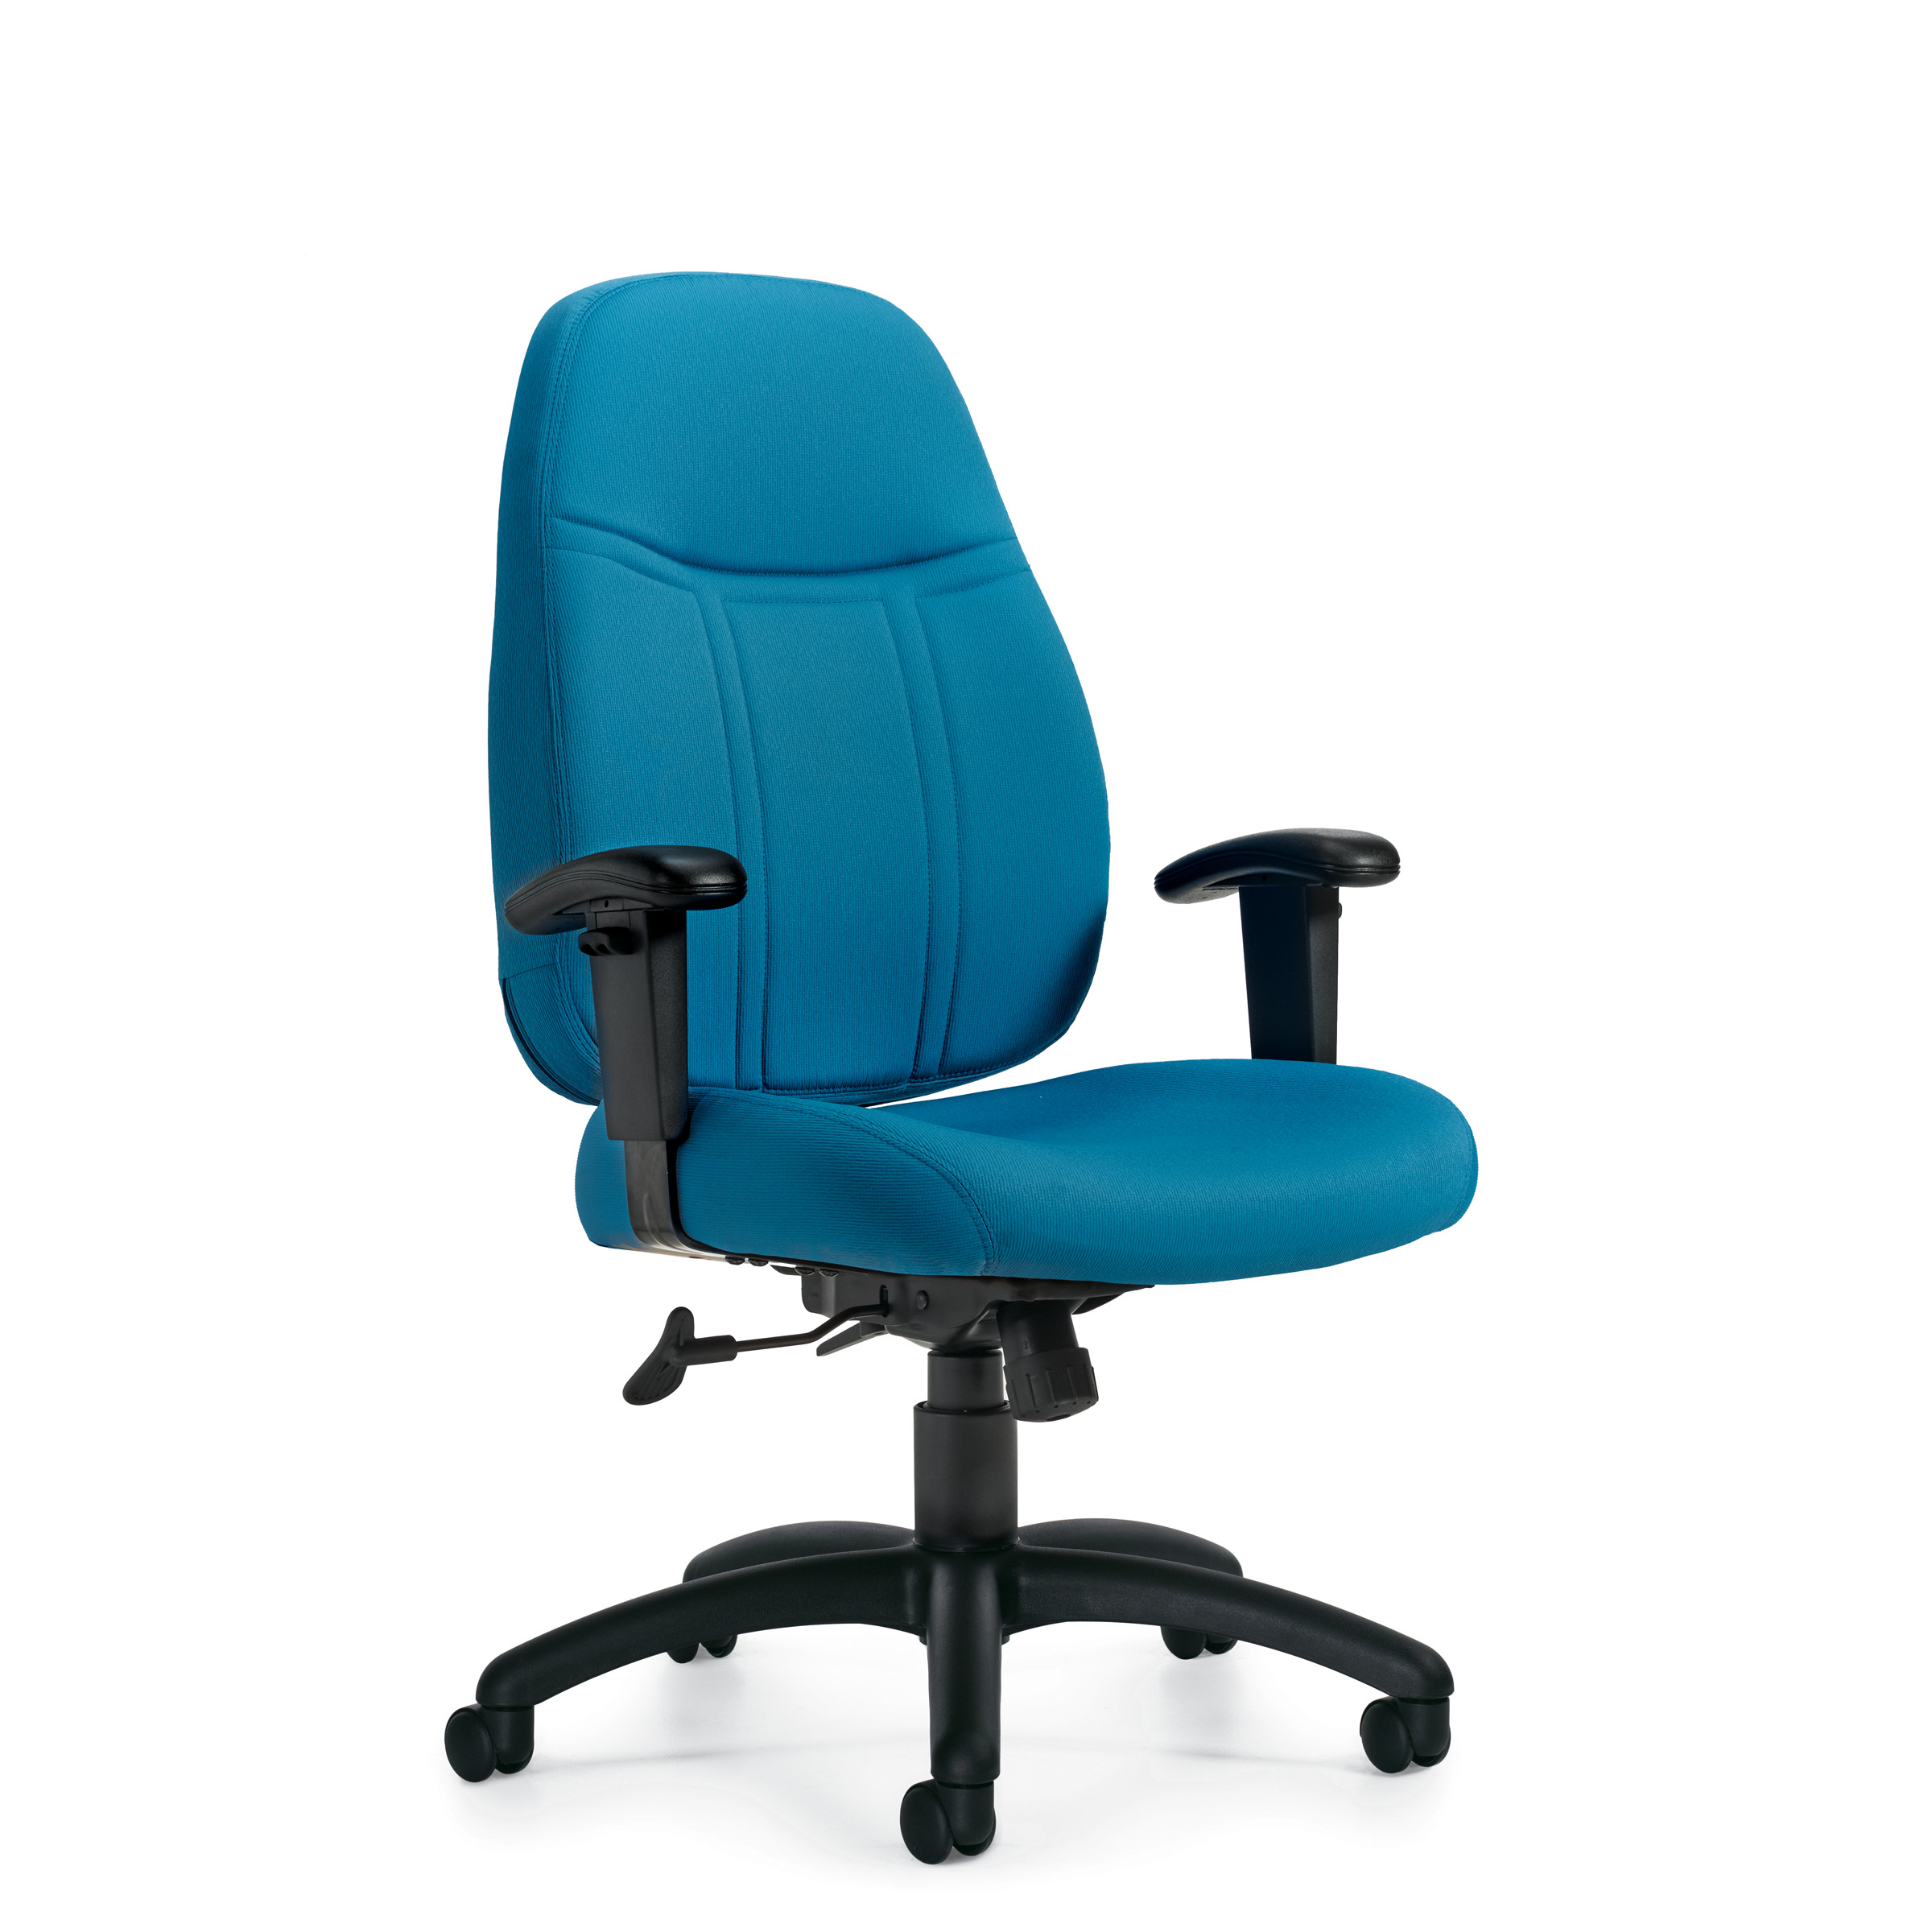 OTG High Back Tilter Chair With Arms #OTG11652